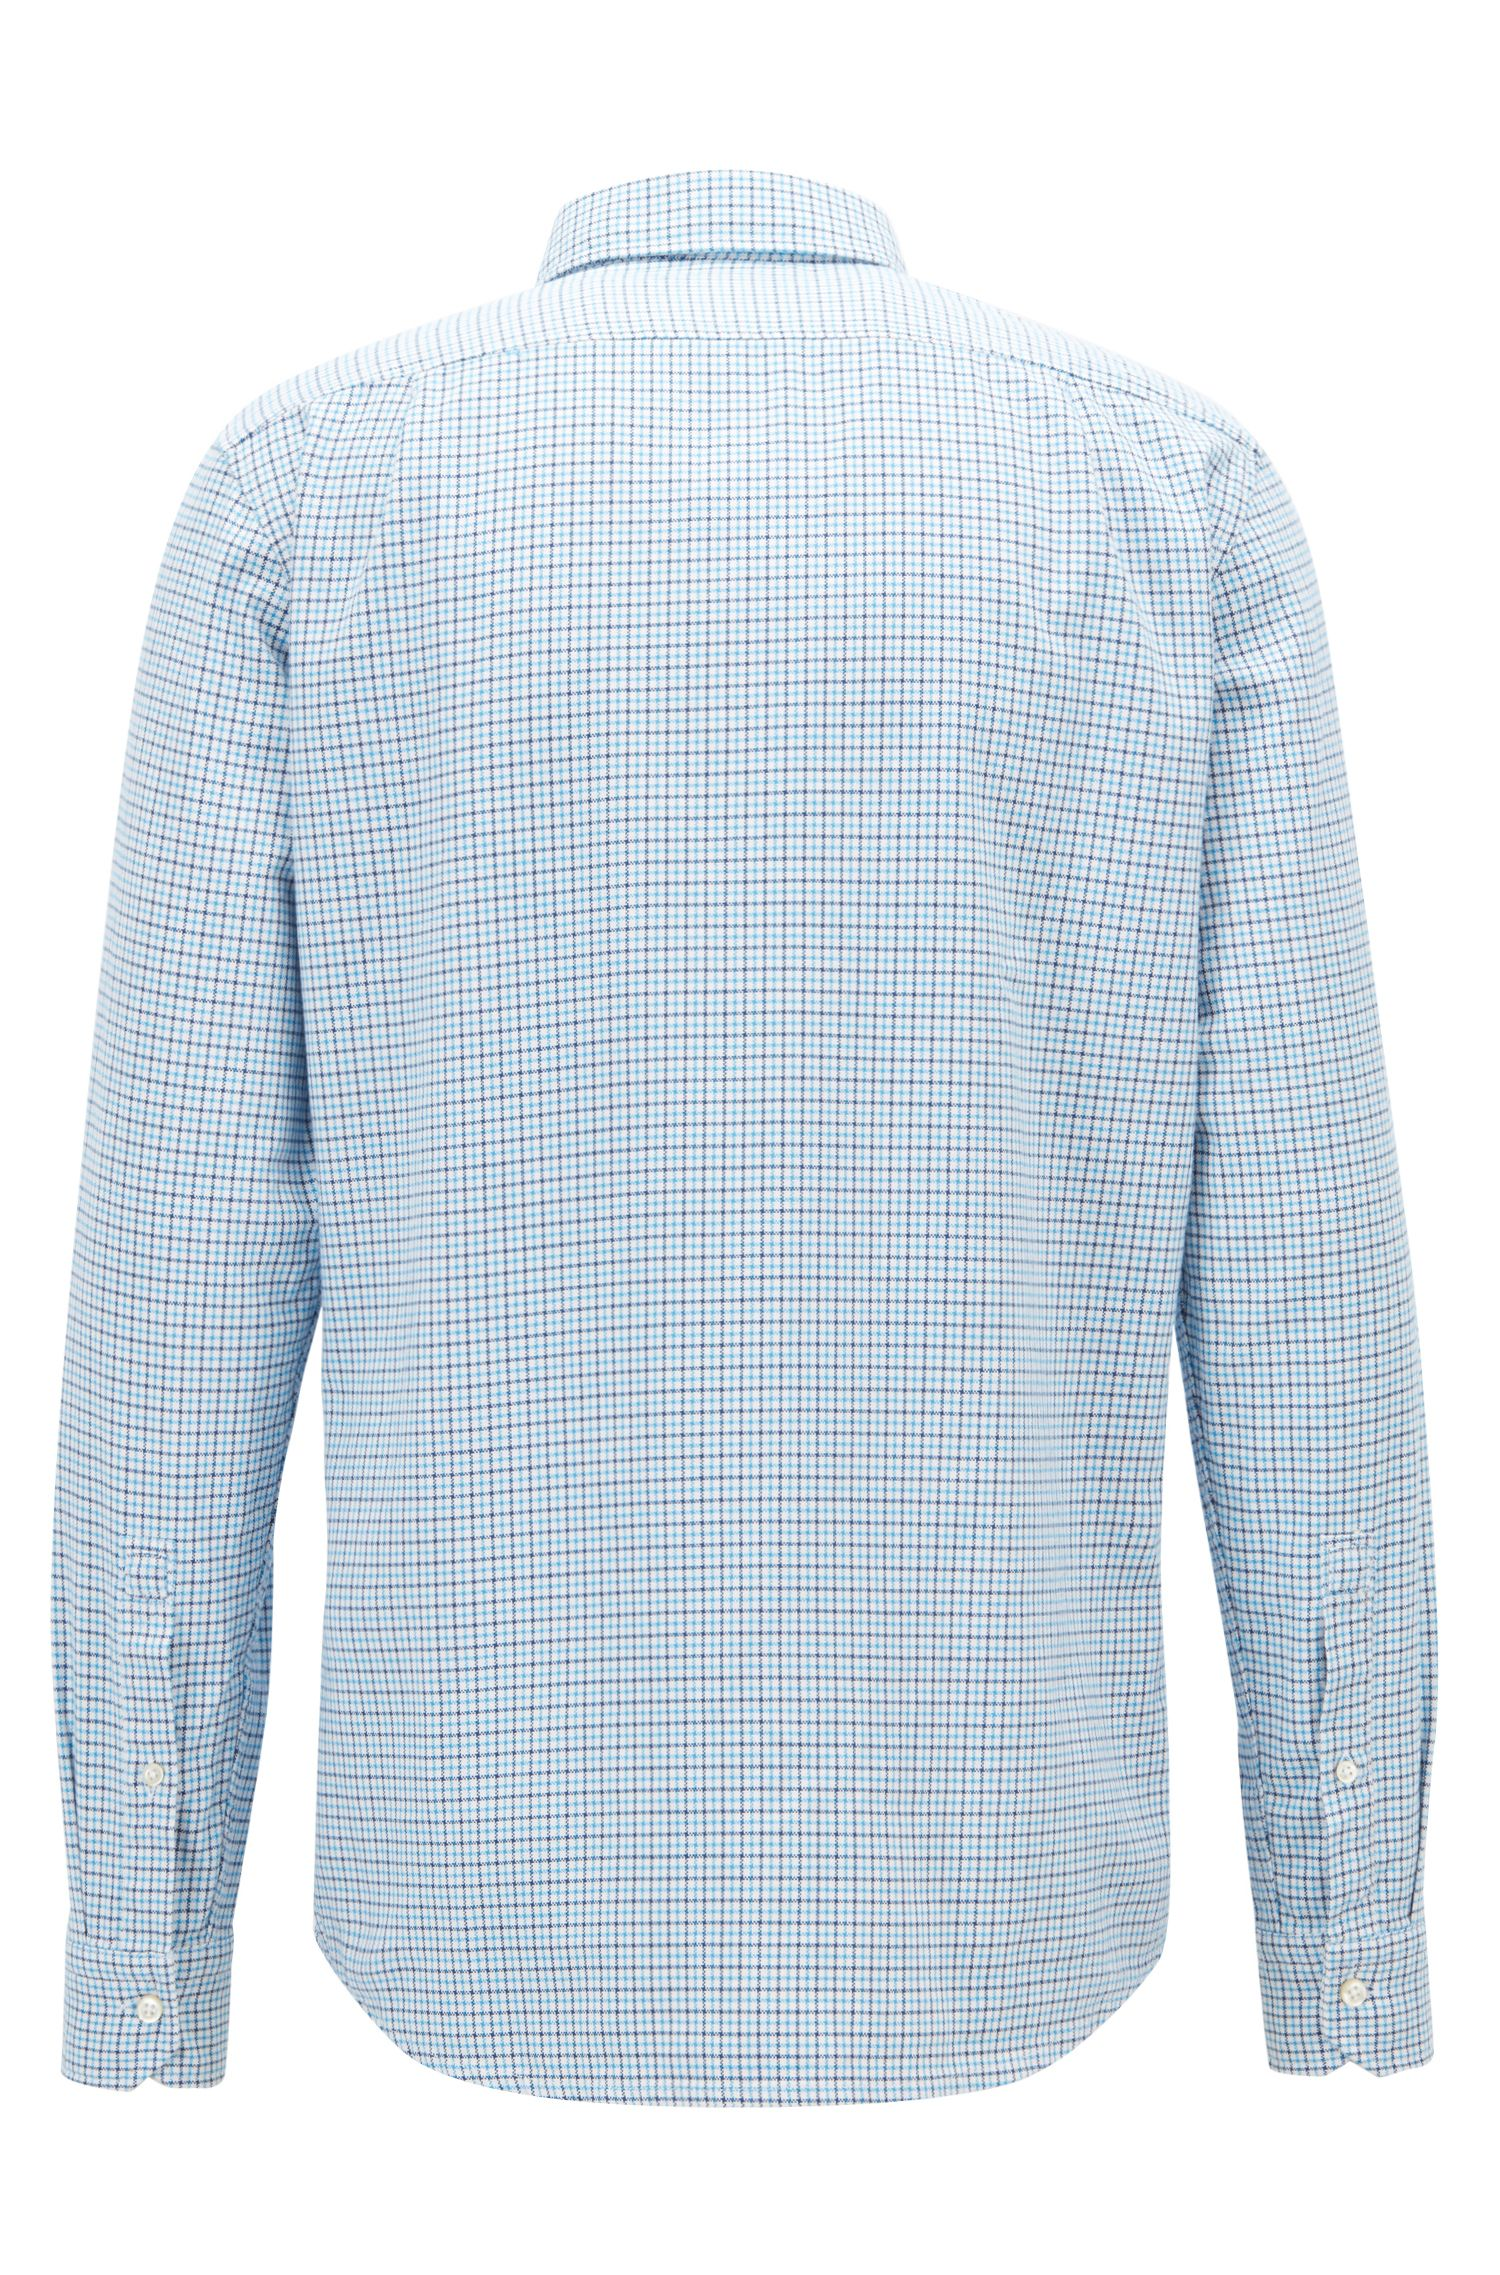 Chemise Regular Fit en coton Oxford à motif vichy, Bleu vif